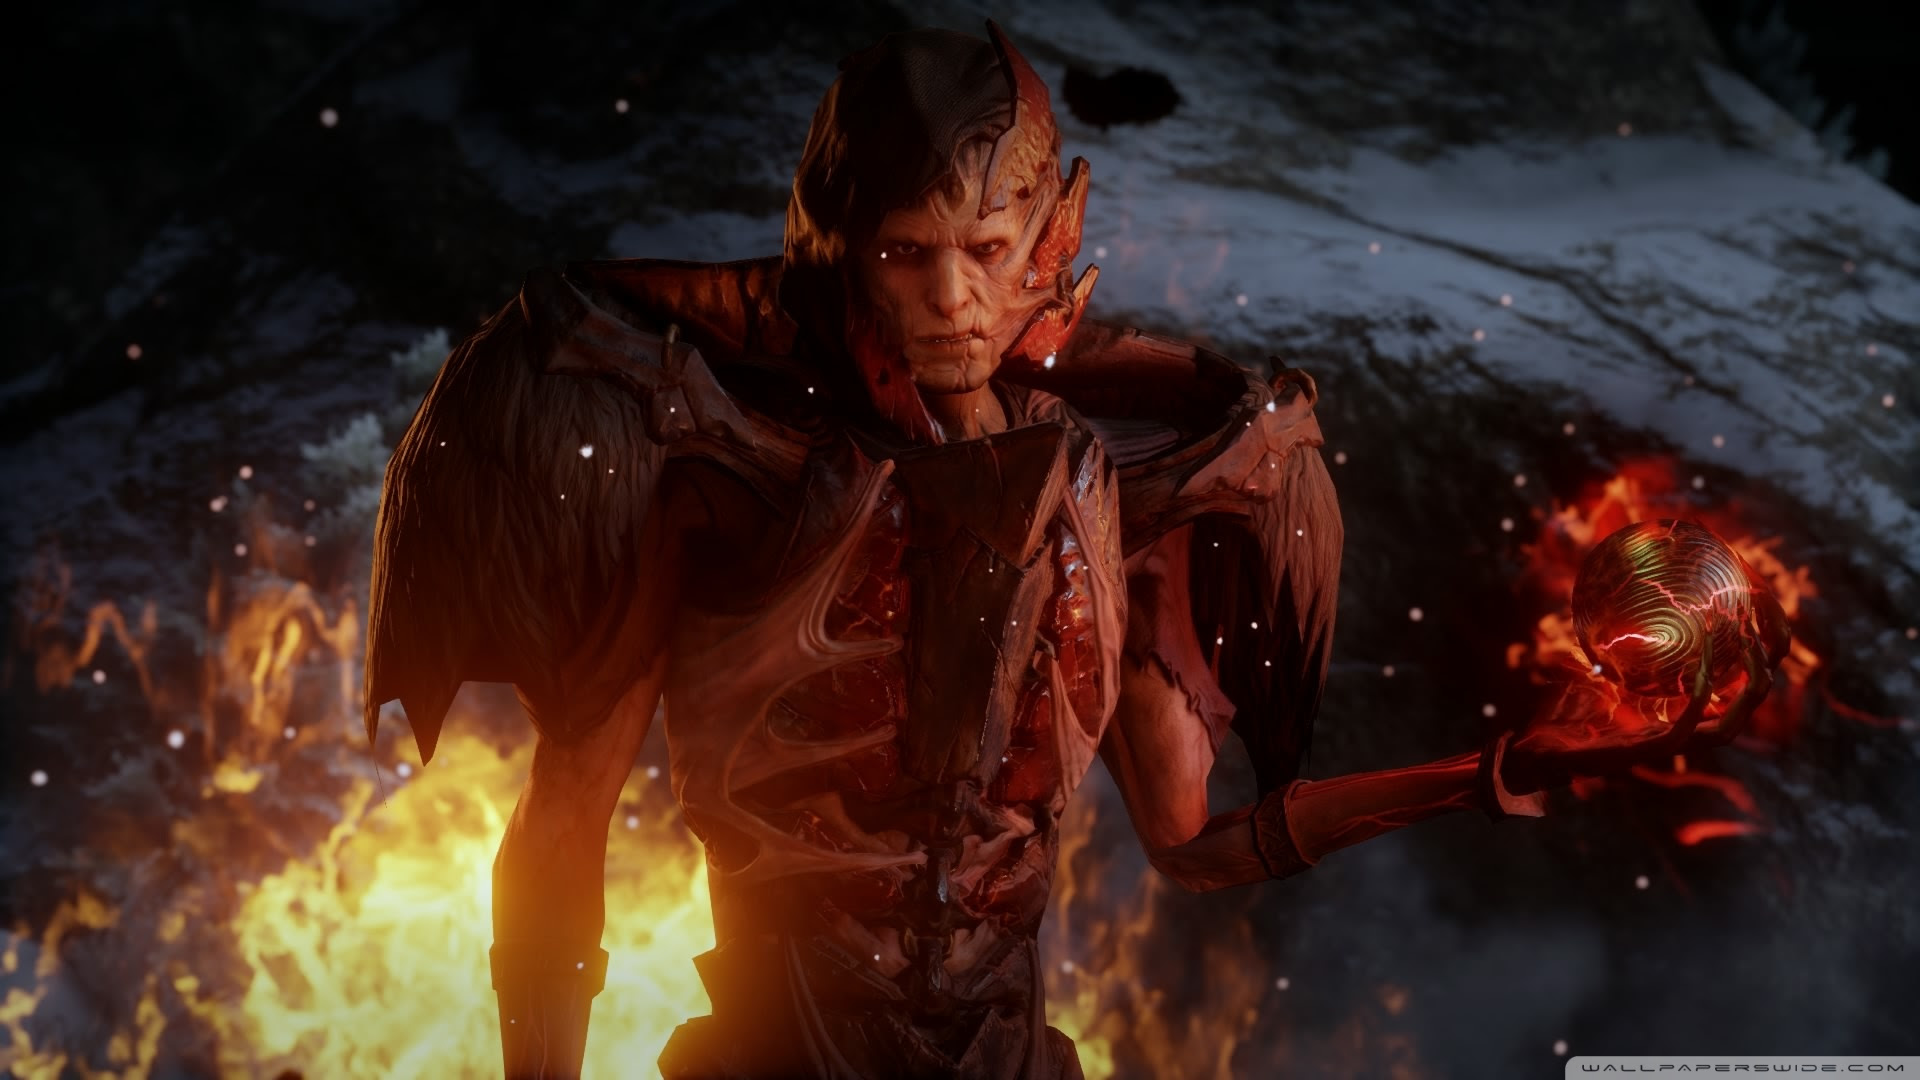 Dragon Age Inquisition 1 Ultra Hd Desktop Background Wallpaper For